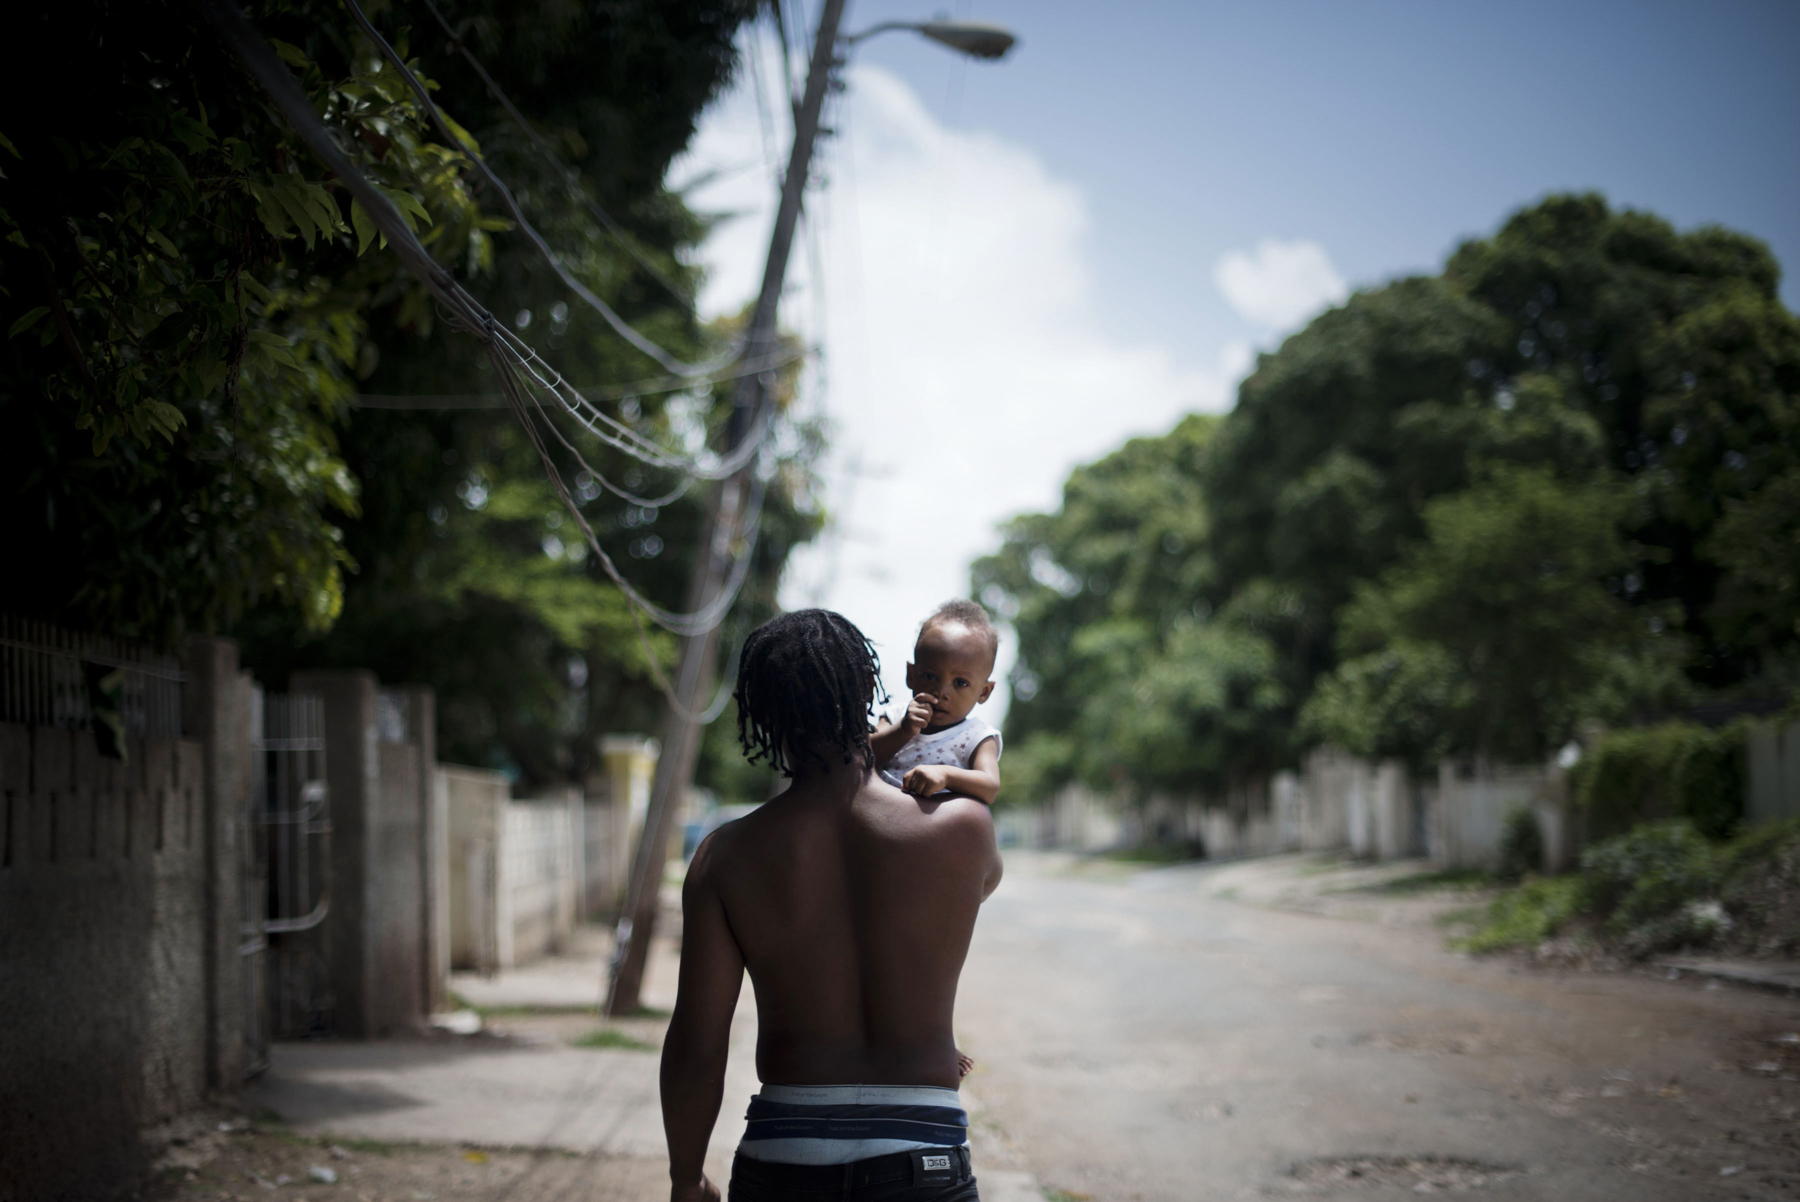 A man walks with his child on the streets of Mountain View in Kingston, Jamaica. 